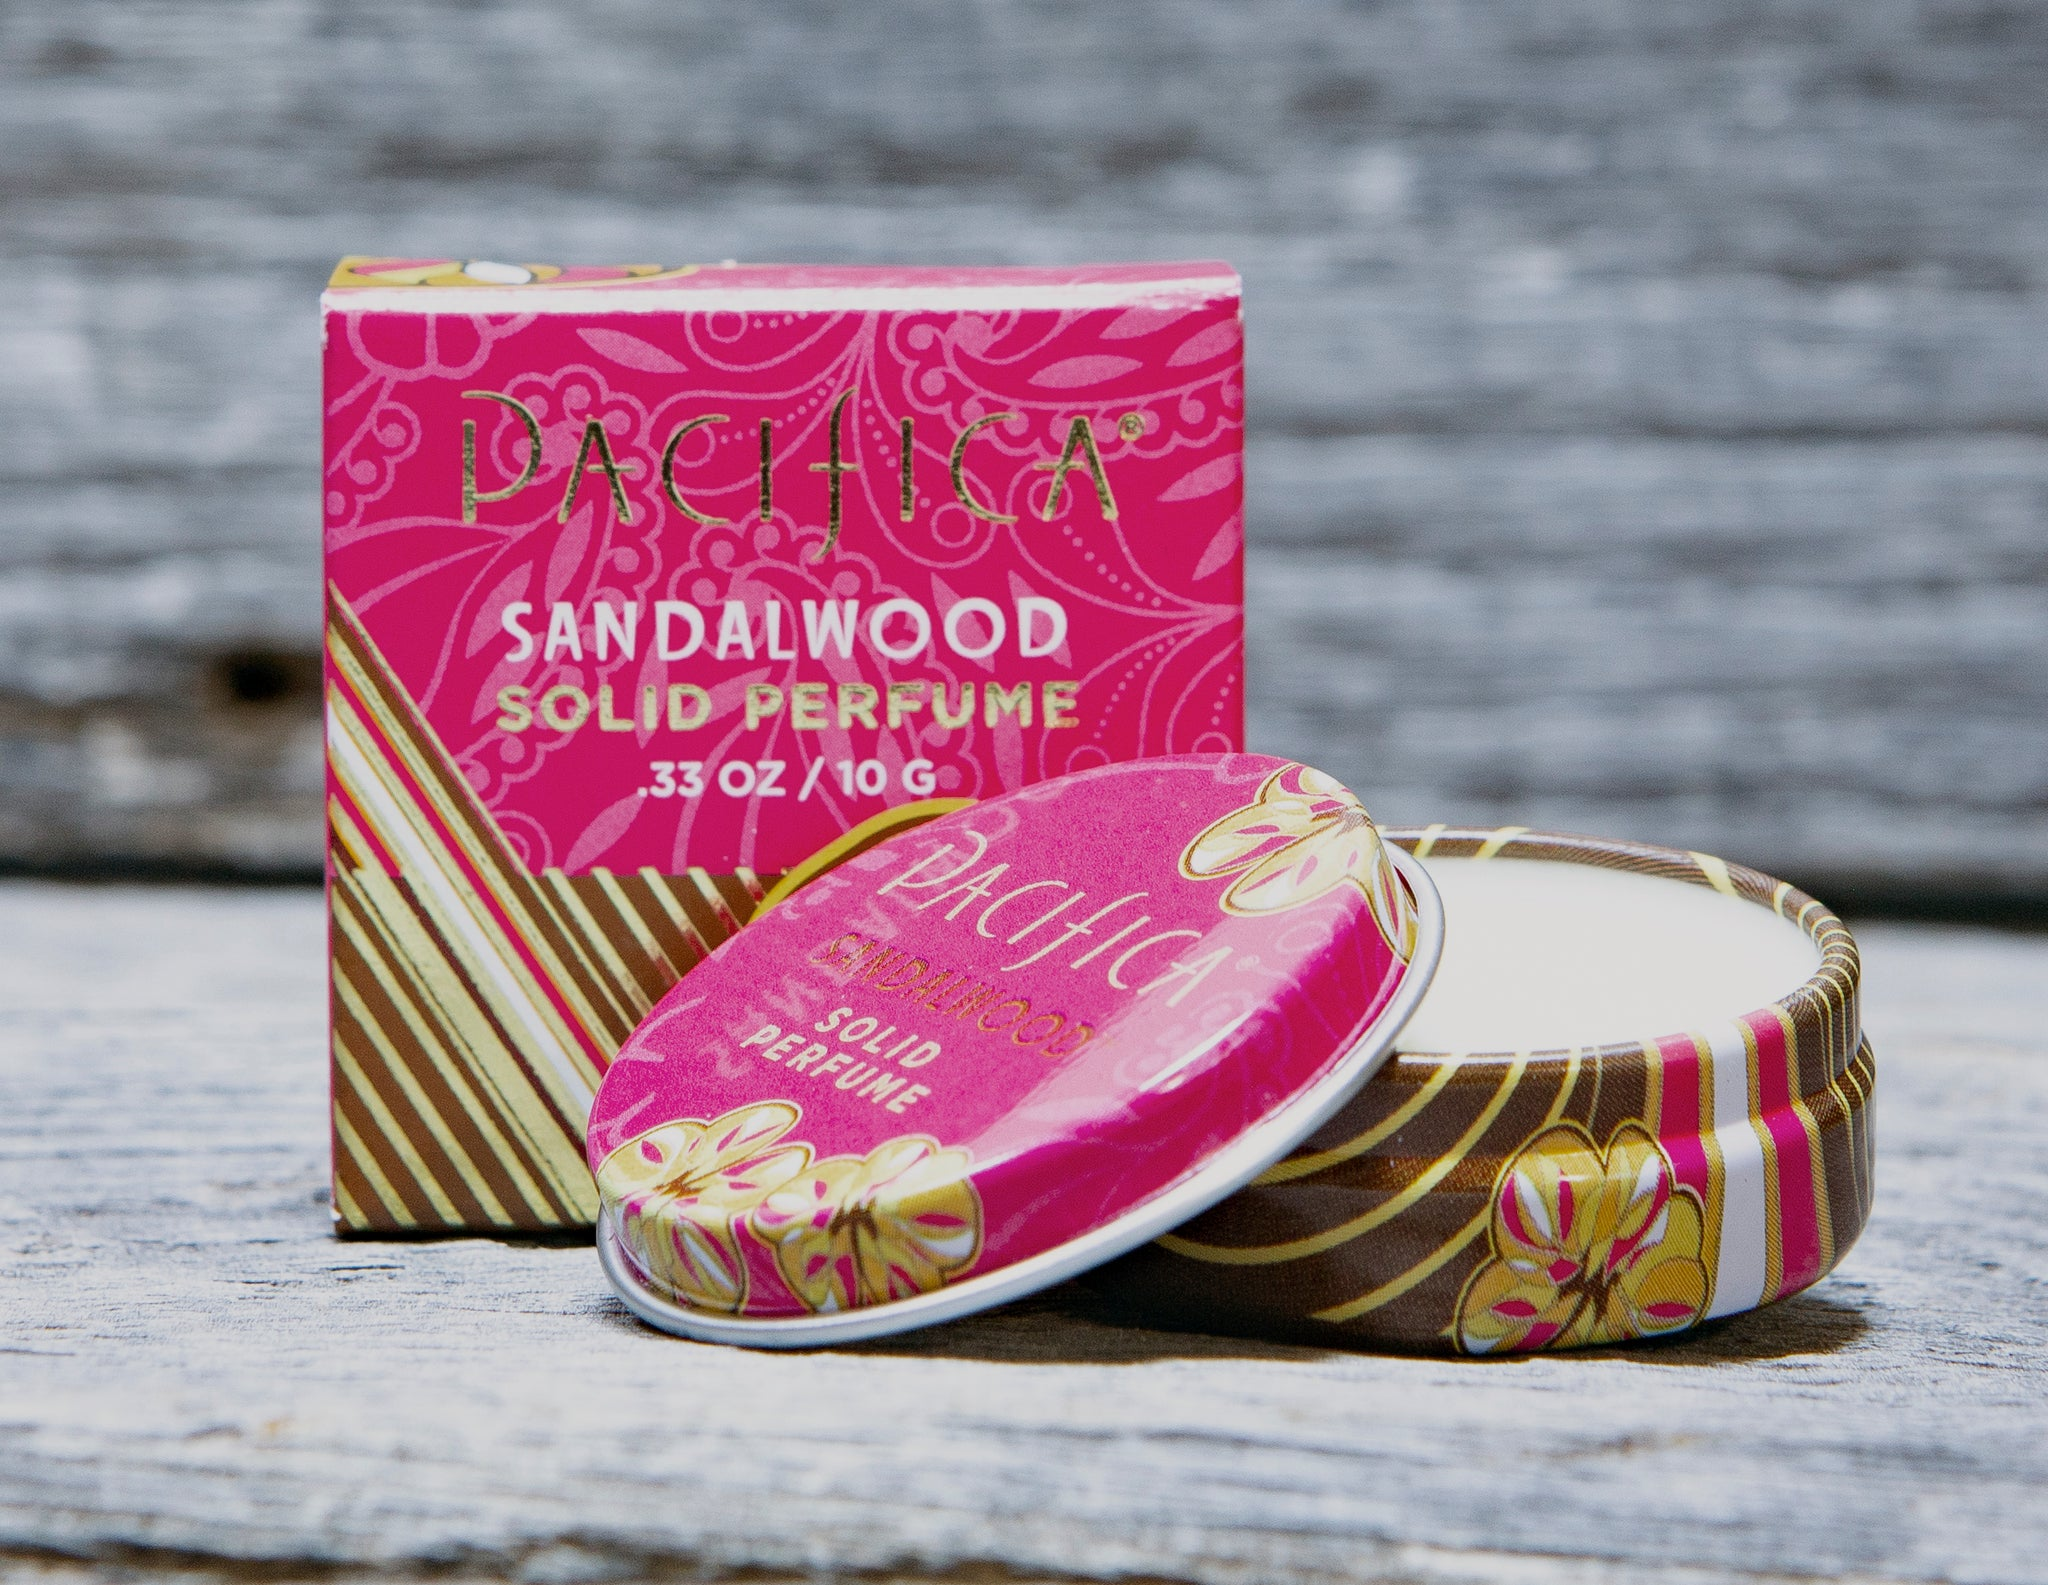 Pacifica Sandalwood Solid Perfume by Pacifica